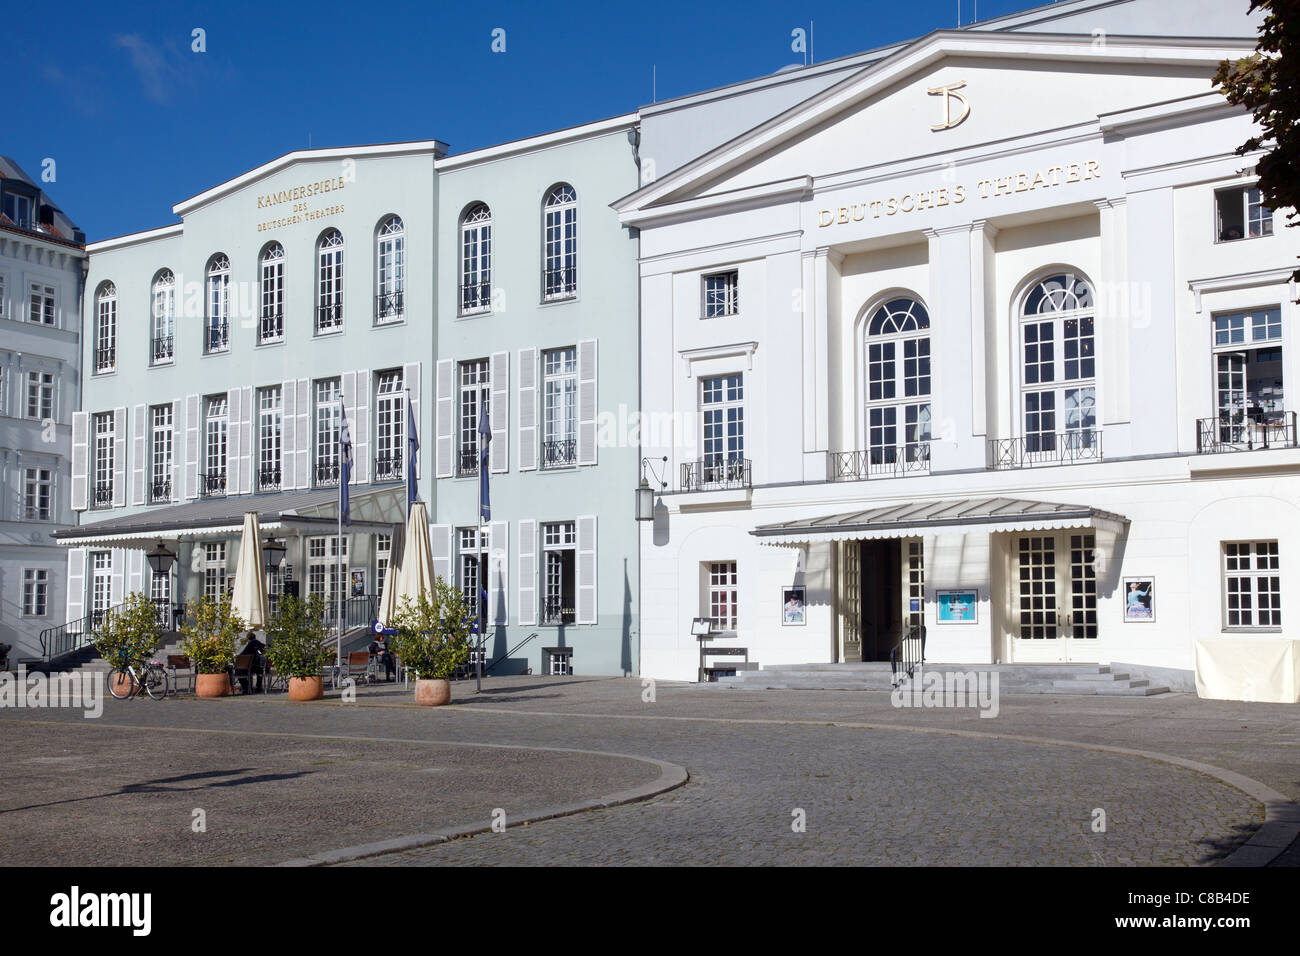 Deutsches Theater and Kammerspiele, Berlin, Germany - Stock Image